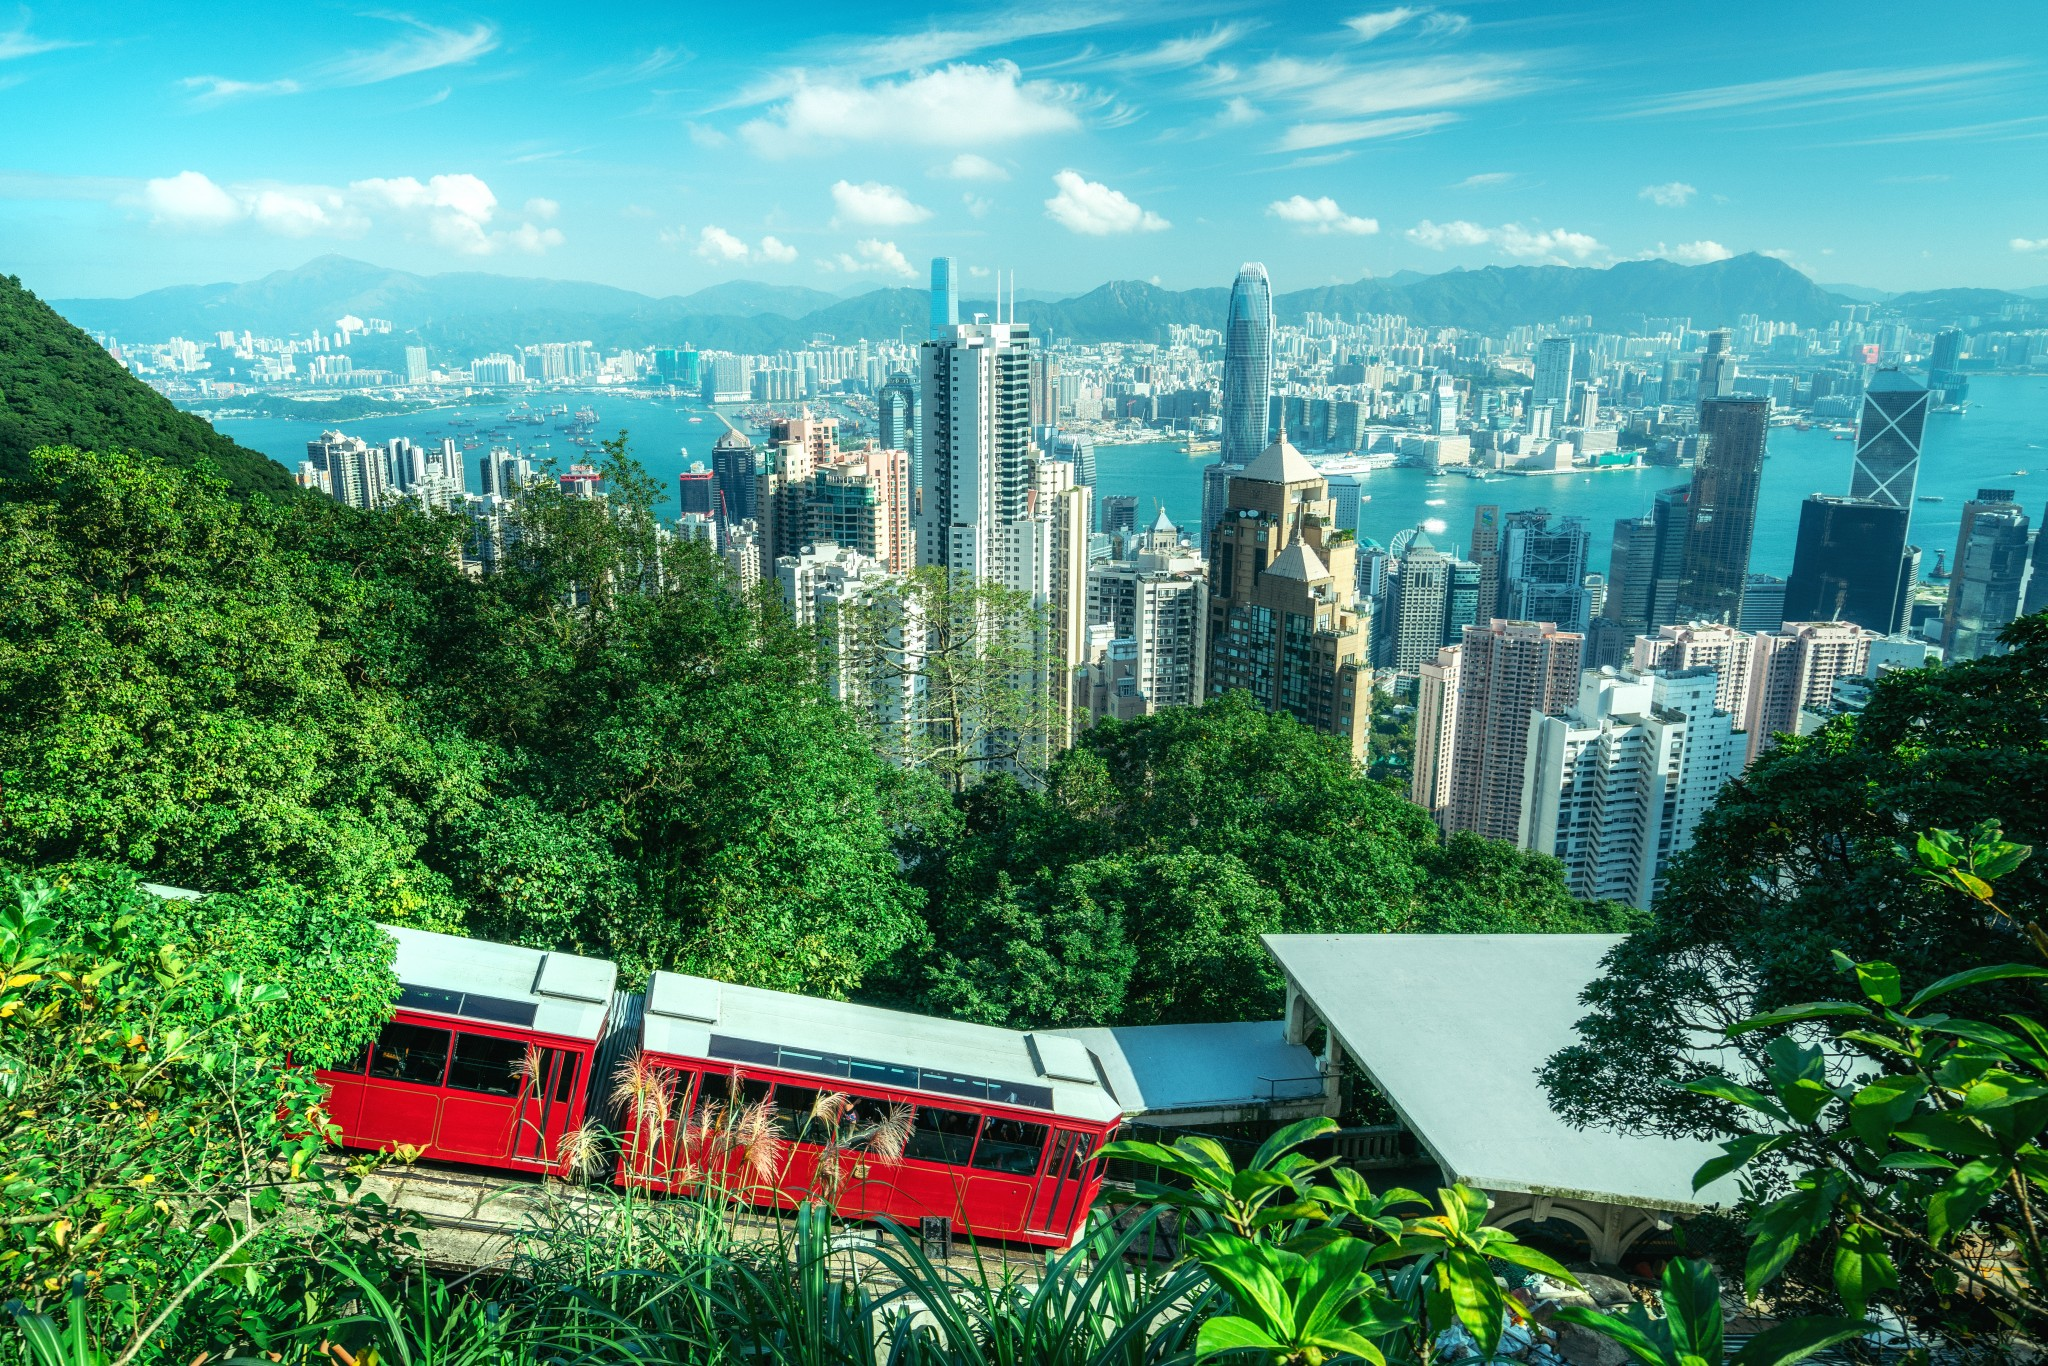 Visiting Hong Kong, China — our top things to do in Hong Kong include visiting Victoria's Peak, Tian Tan Buddha, Hong Kong Waterfront, Hong Kong Beach, Hong Kong Shopping Markets, and Bruce Lee's Hong Kong home.